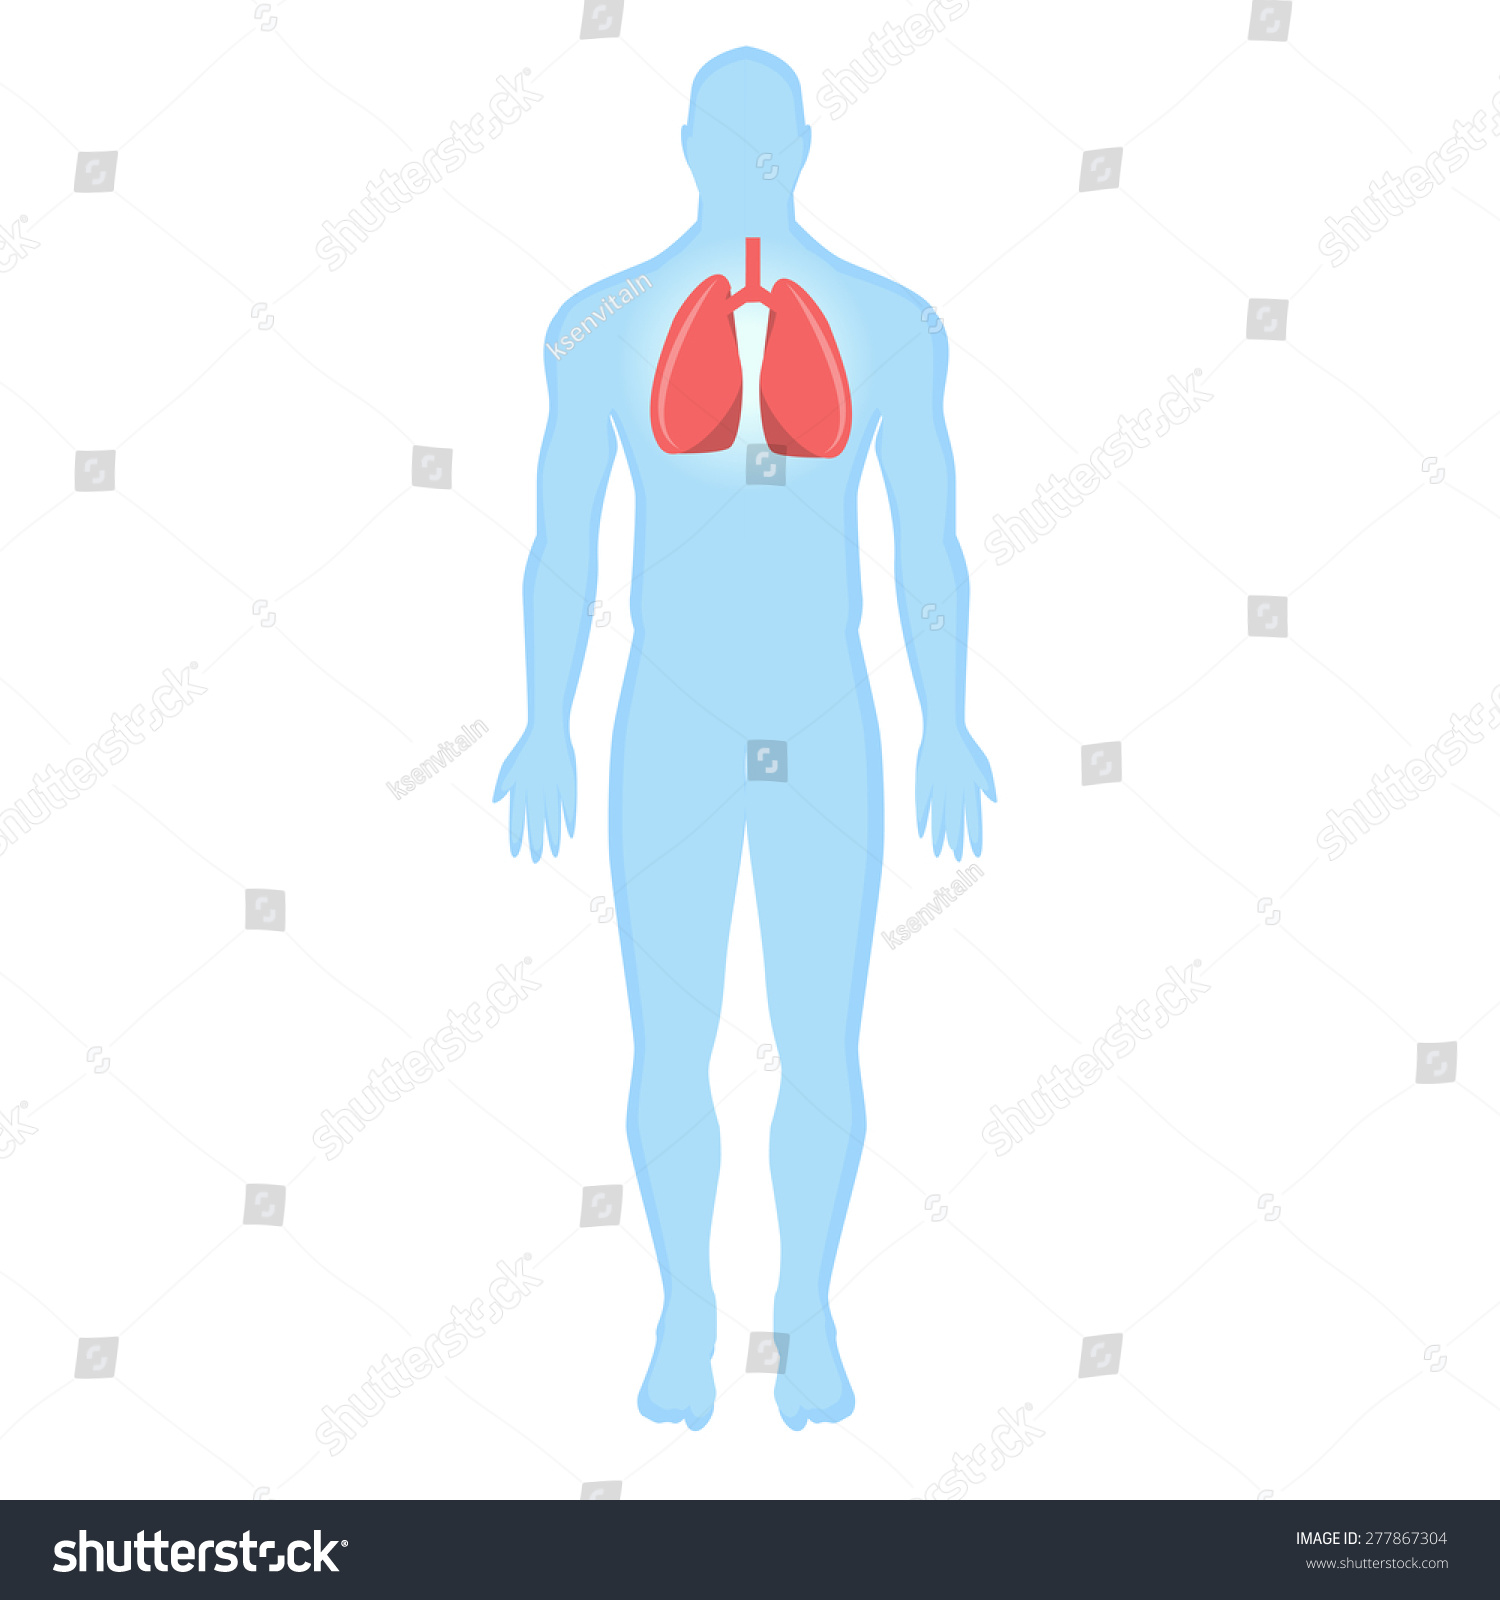 Blue Human Silhouette Human Lungs On Stock Vector 277867304 ...